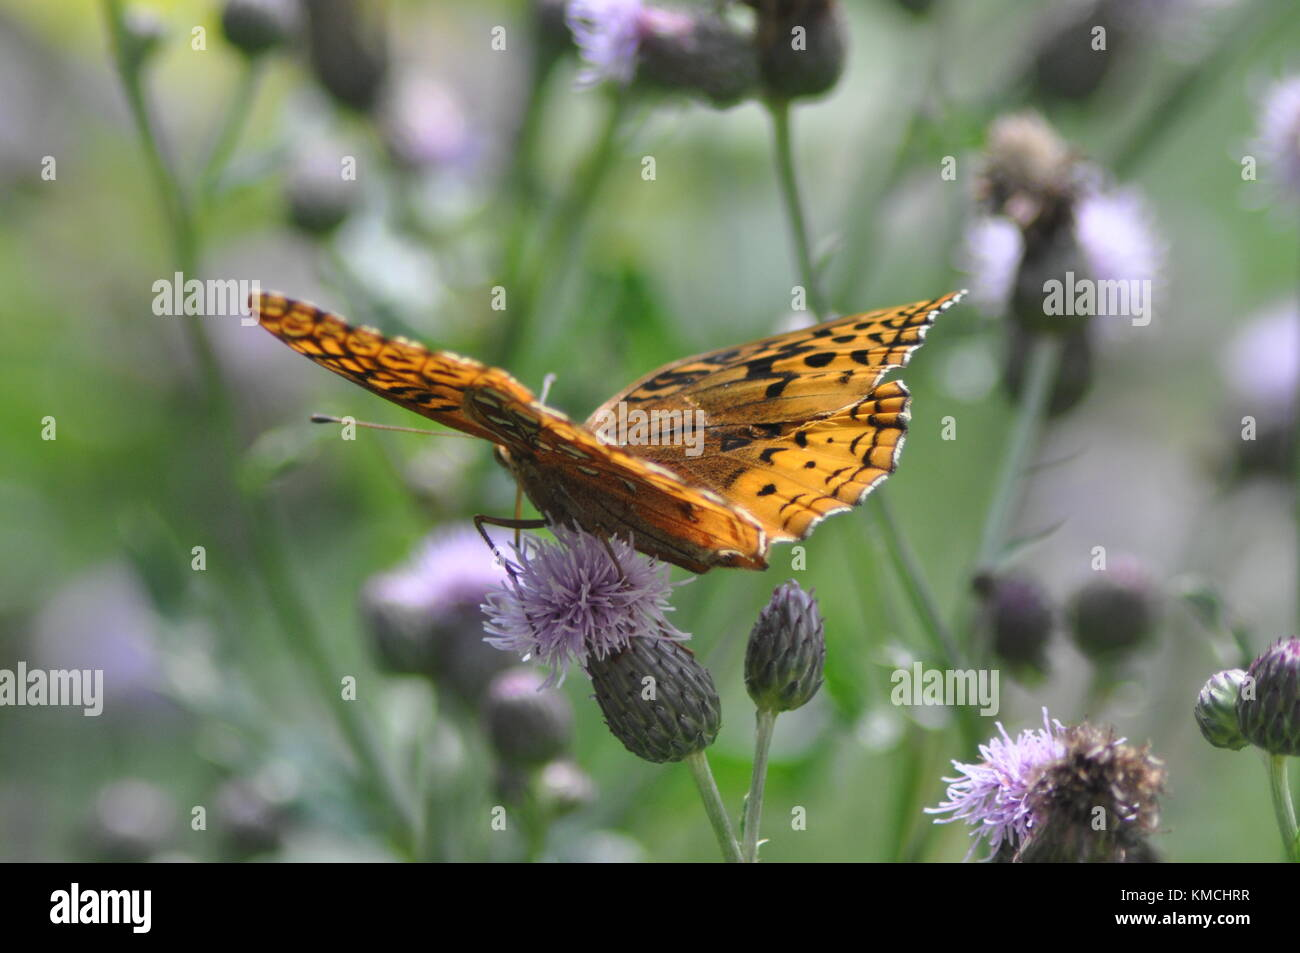 Butterfly Feeding on Flower - Stock Image